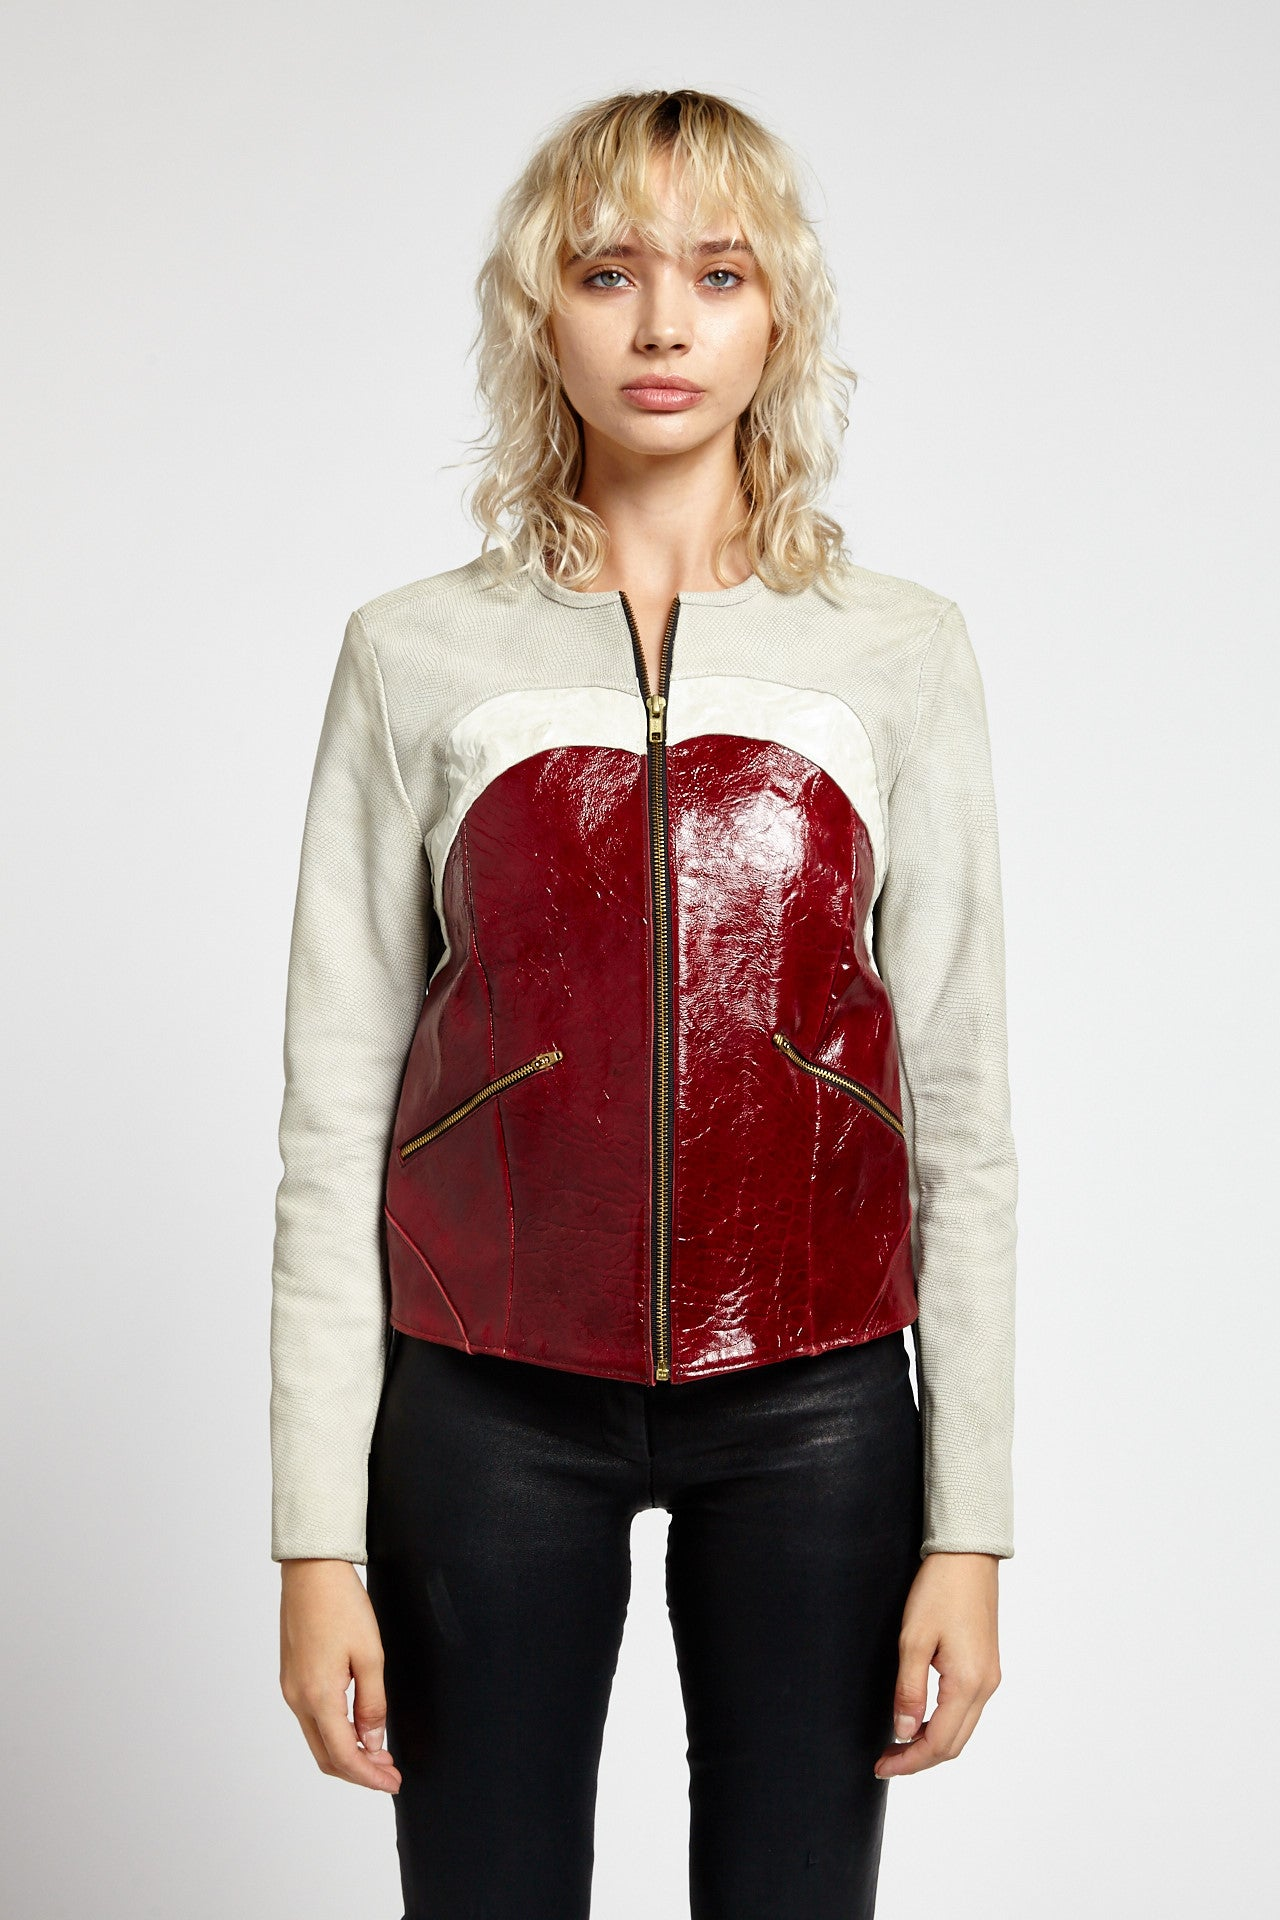 CASTOR BEAN TOP WHITE JACKET-JACKETS-Mundane Official-S-Mundane Official